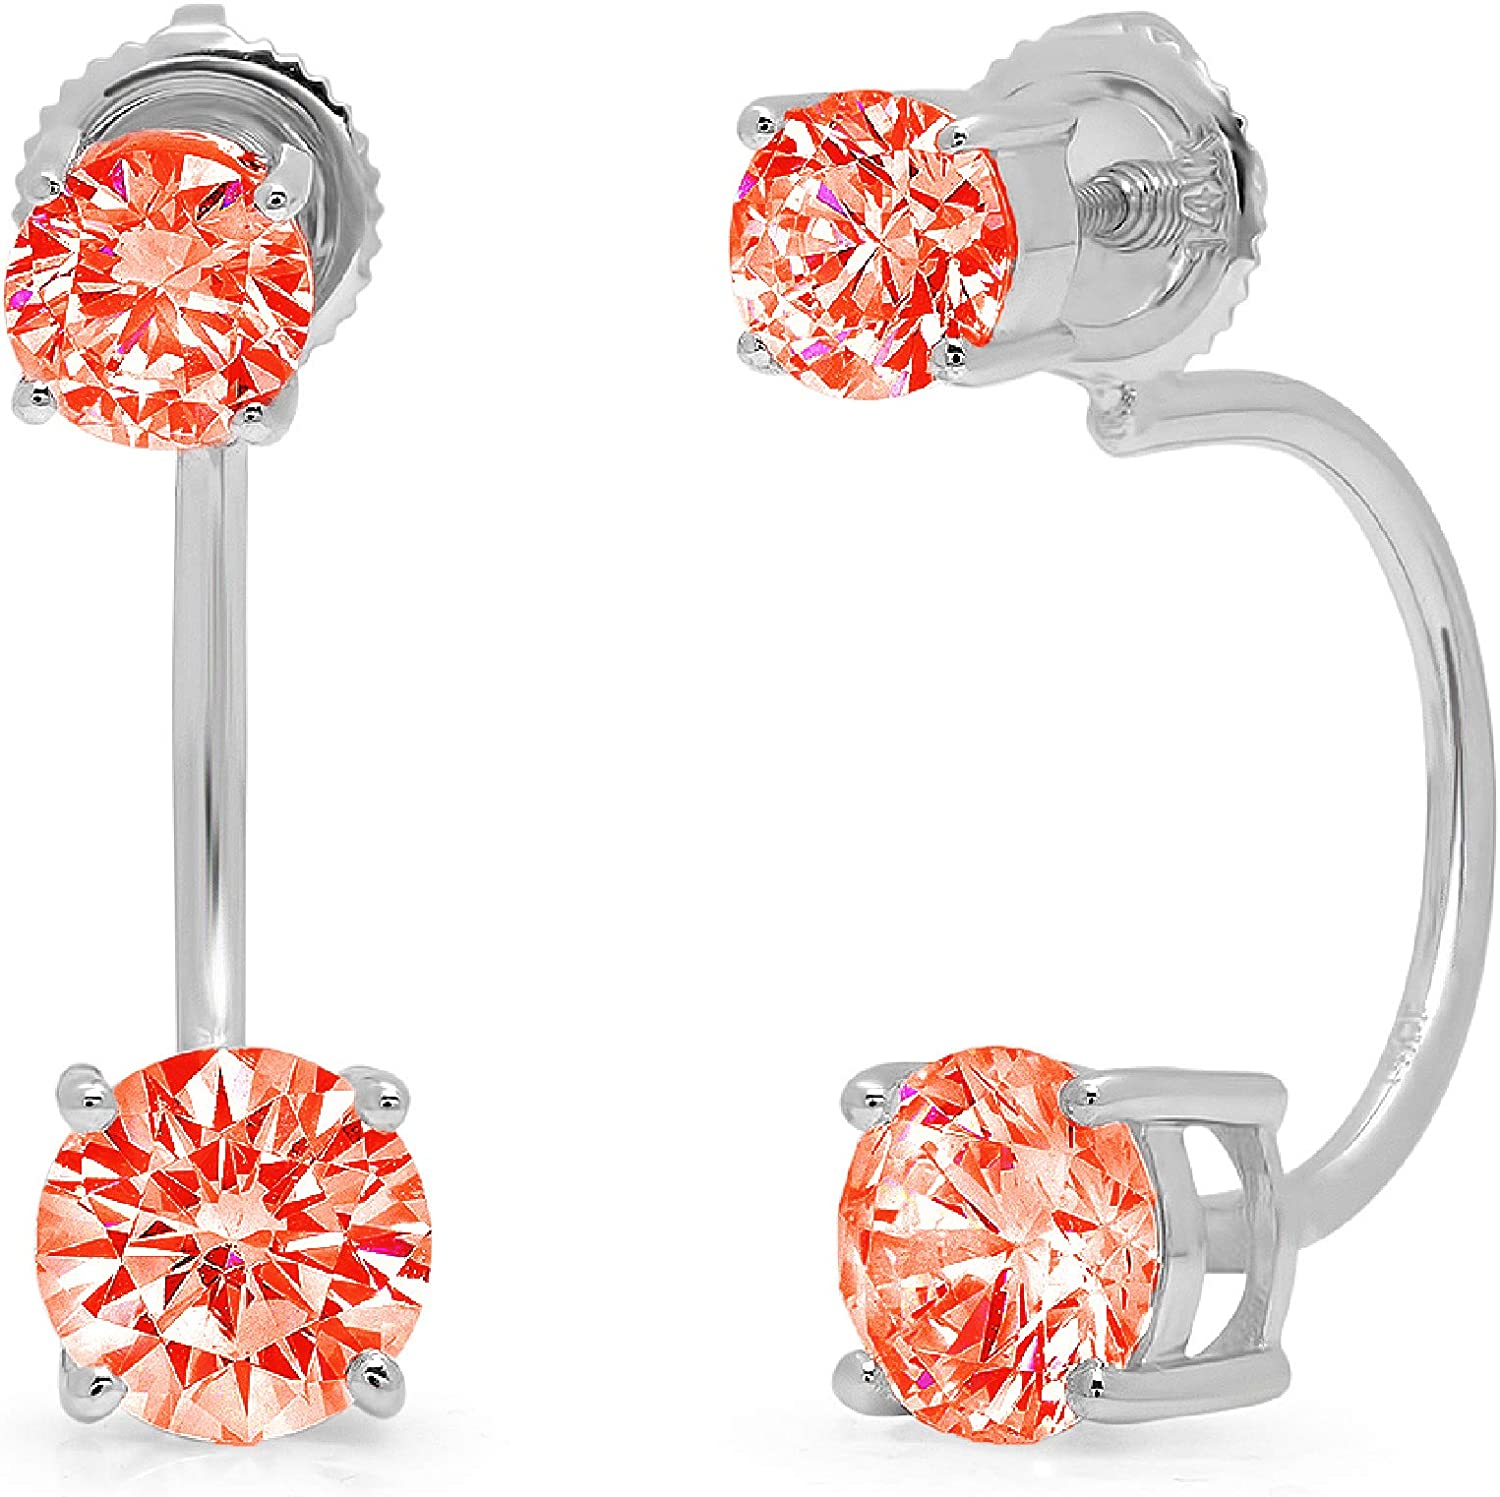 3.1CT Dual Double Drop 2 stone Round Cut ideal VVS1 Conflict Free Gemstone Solitaire Genuine Red CZ Designer Lever back Drop Dangle Earrings Solid 14k White Gold